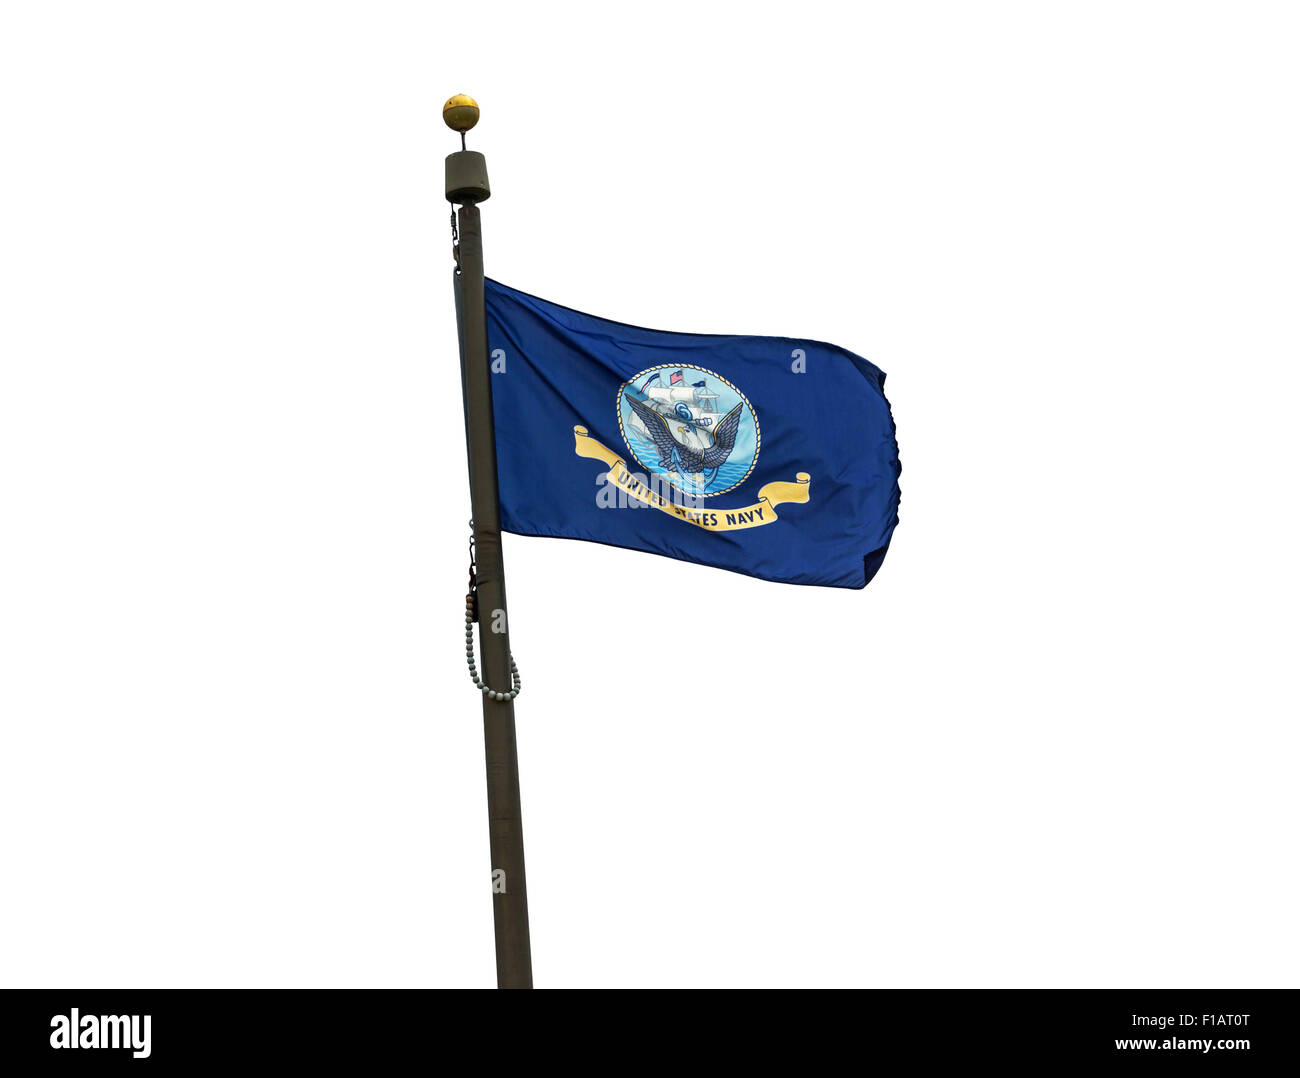 U.S. Navy flag on a white background. - Stock Image